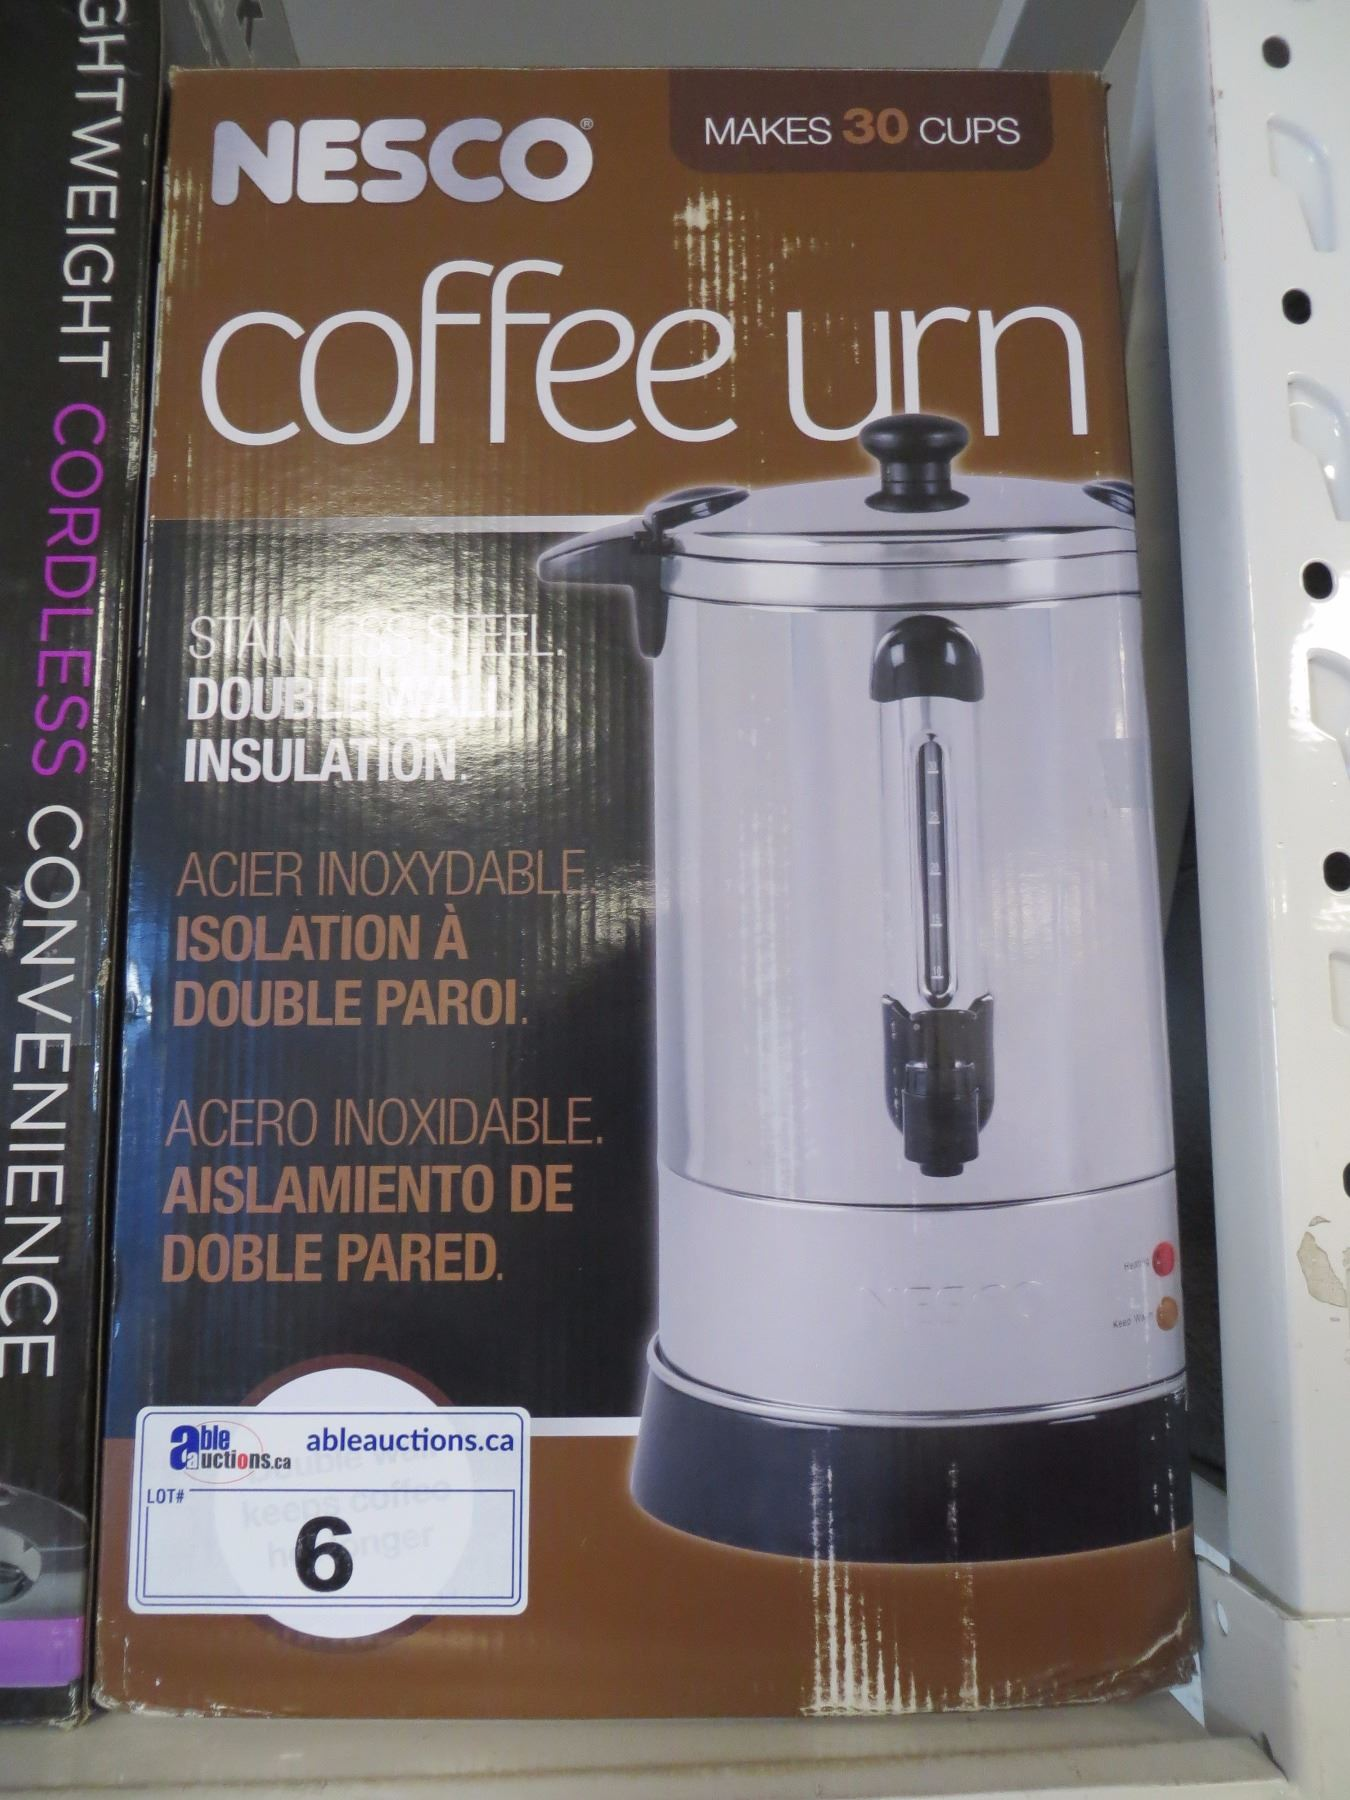 Image 1 Nesco Stainless Steel Urn 30 Cup Coffee Maker